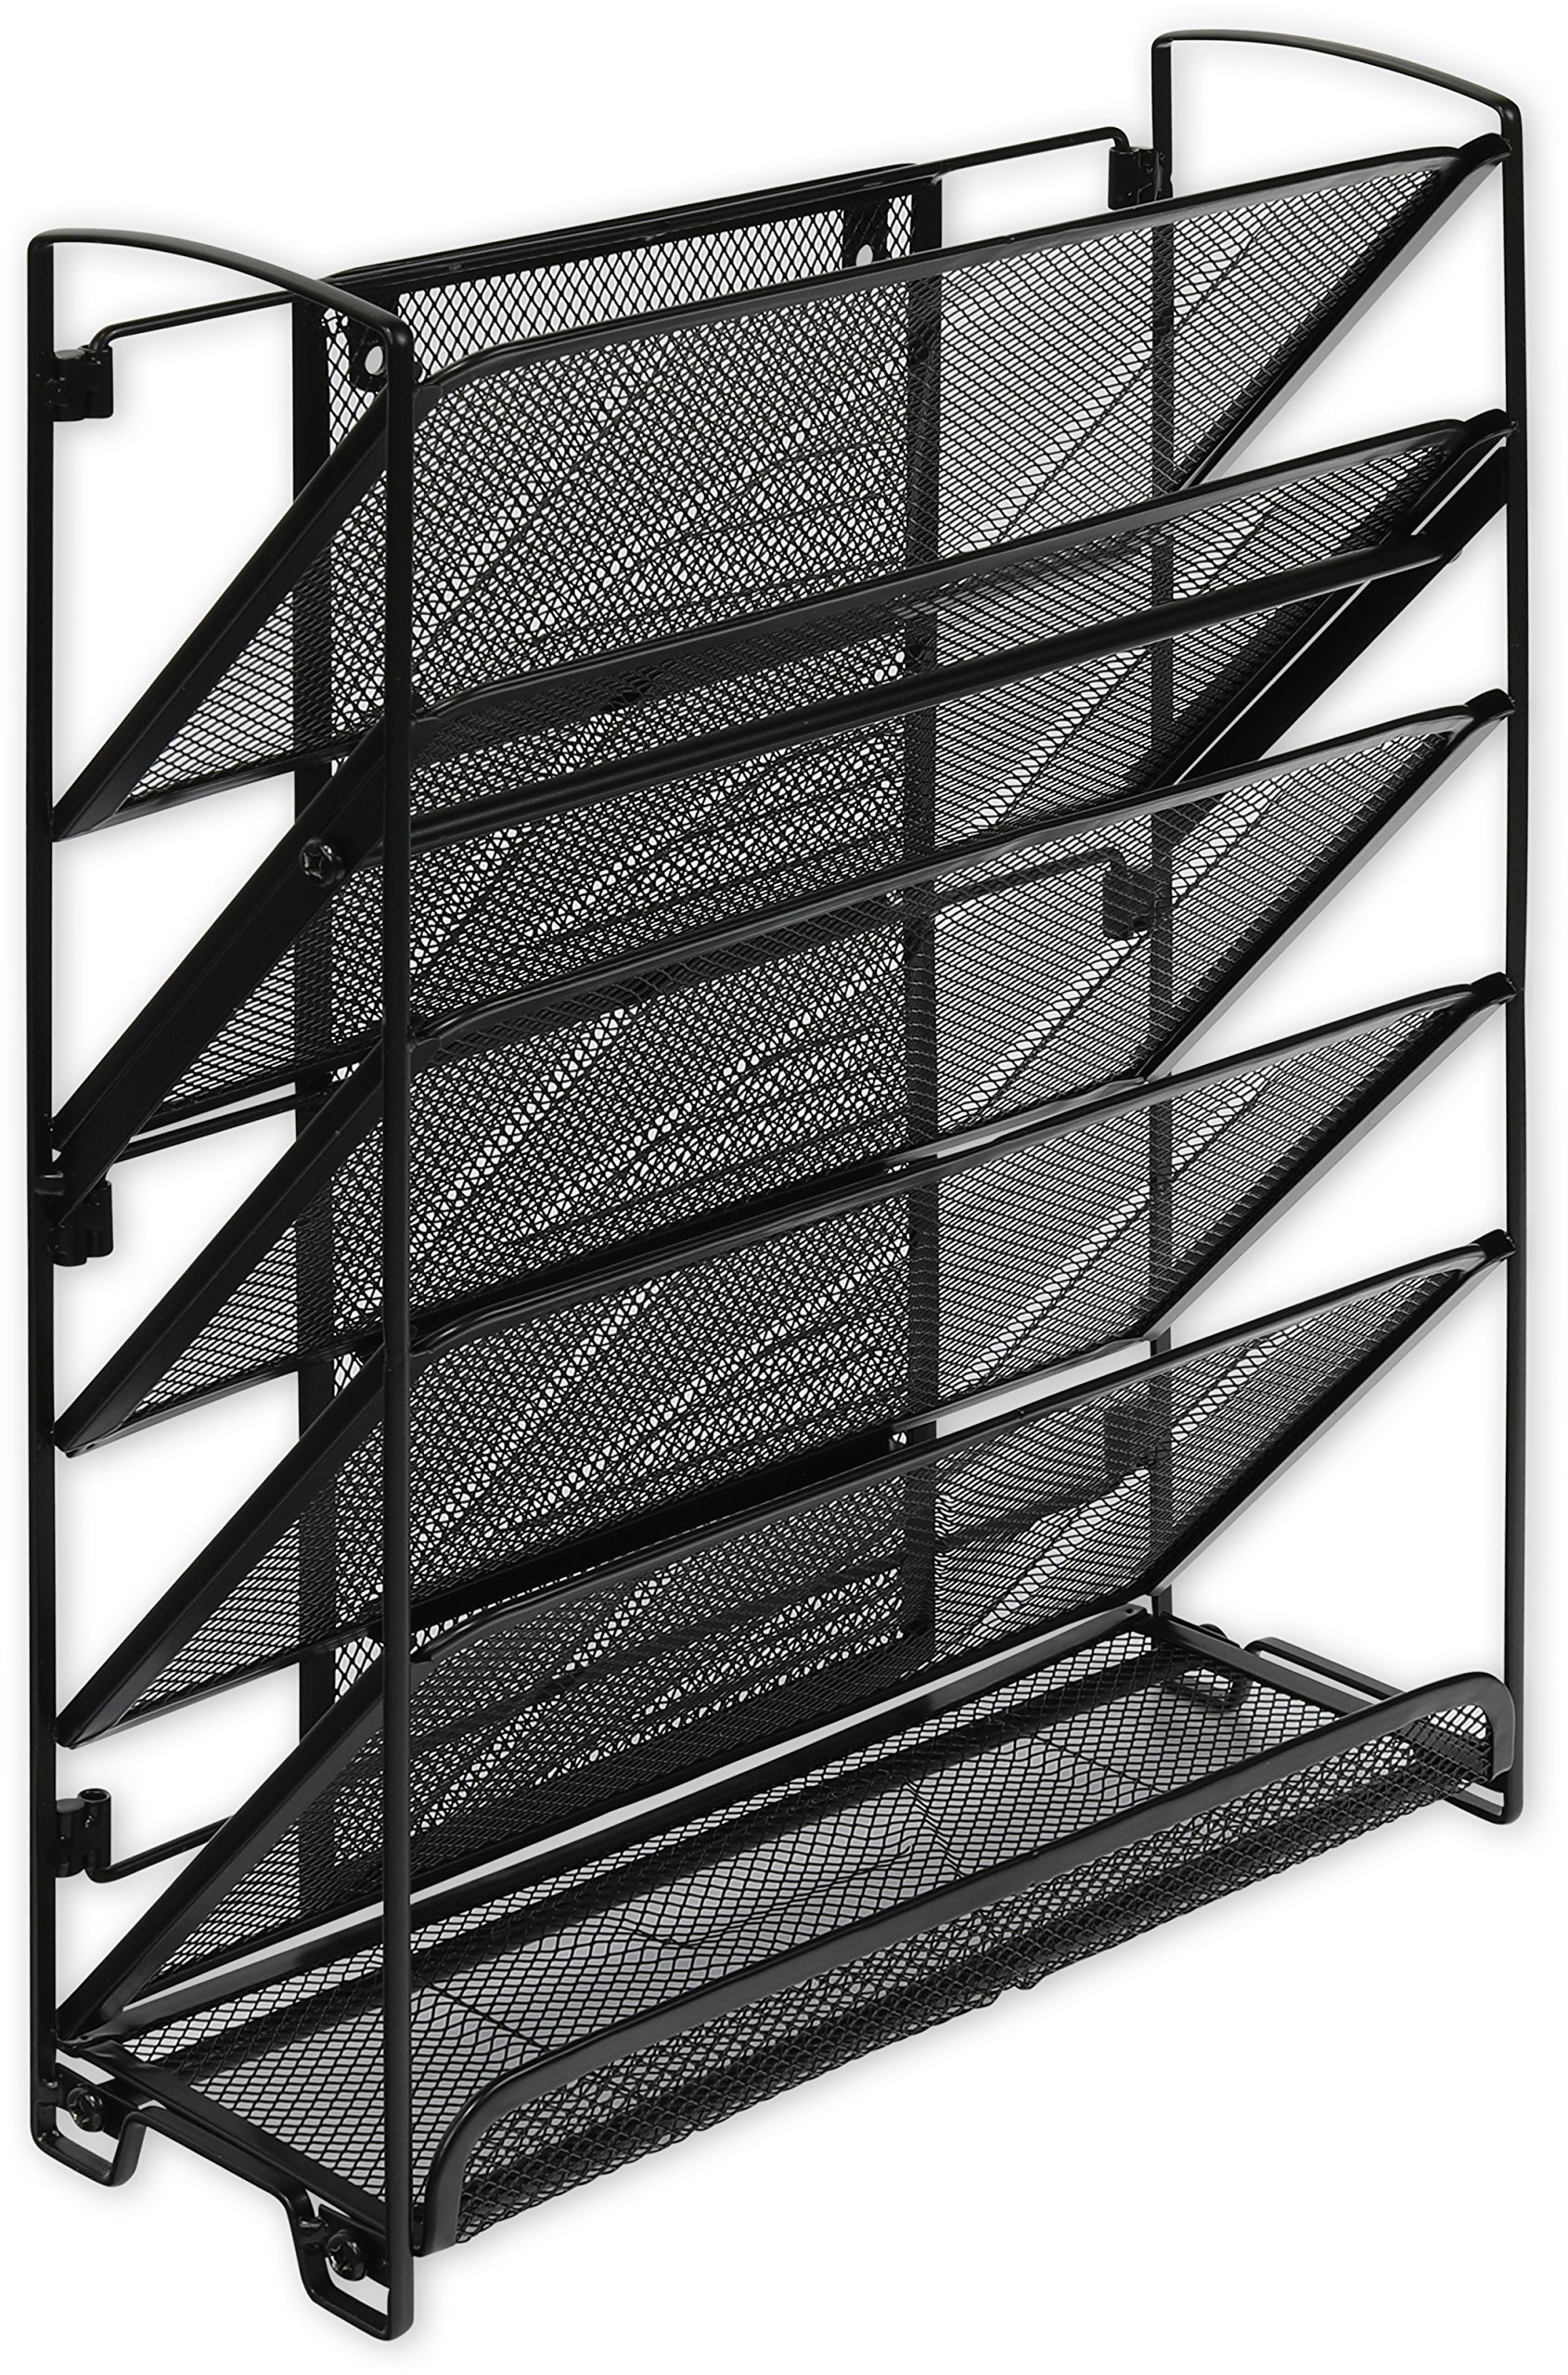 SimpleHouseware 6 Tier Wall Mount Document Letter Tray Organizer, Black by Simple Houseware (Image #4)